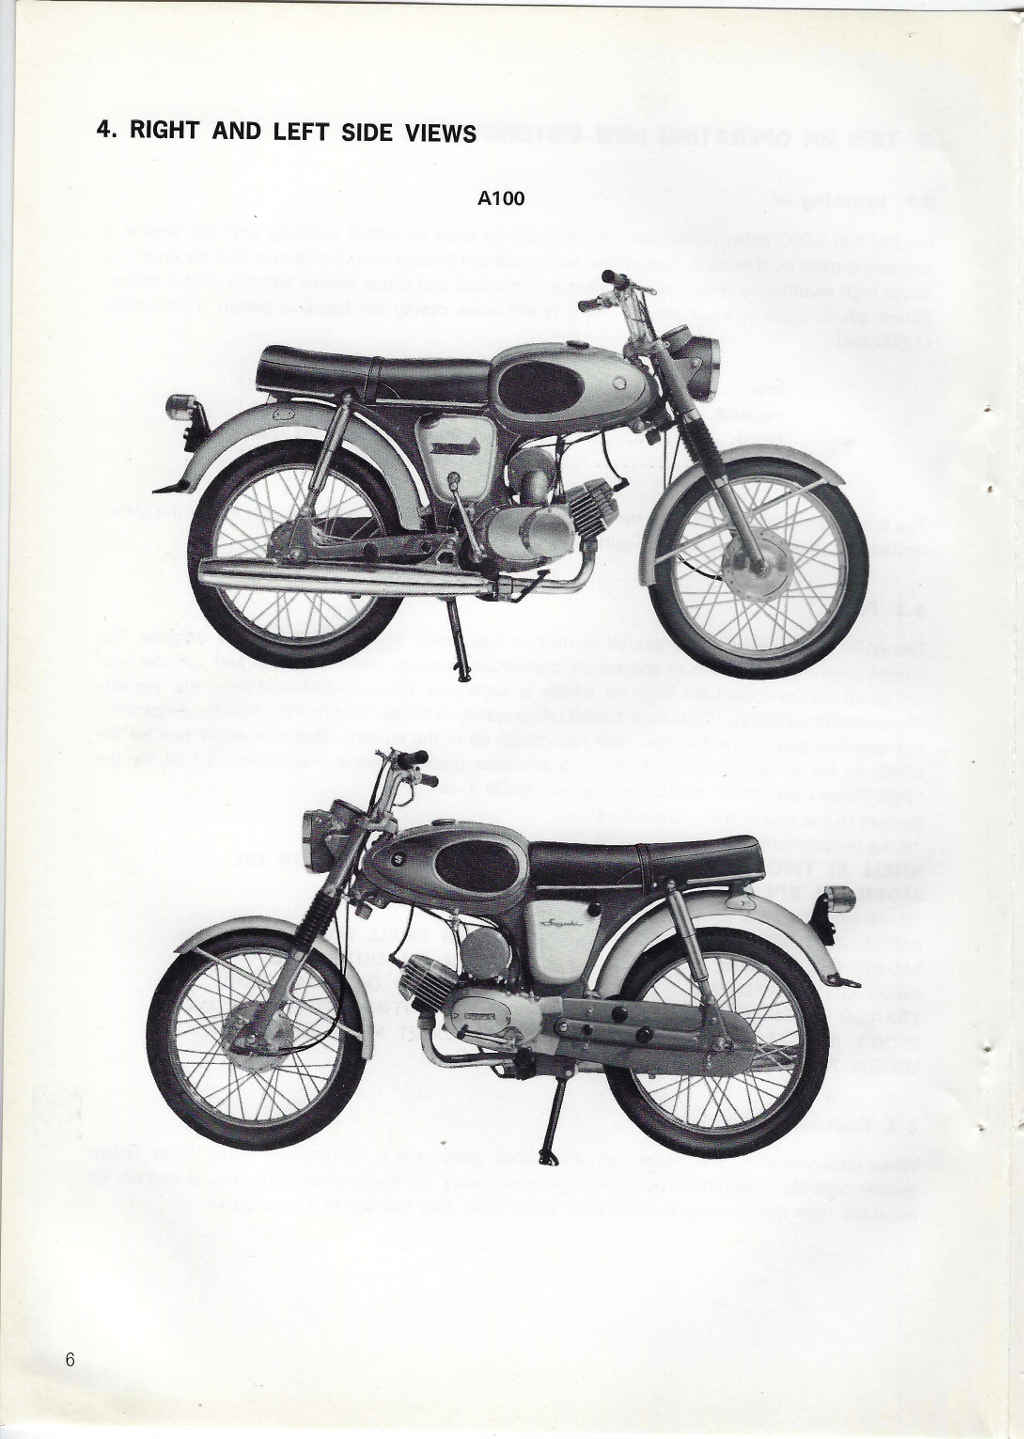 Suzuki A100 Service Manual